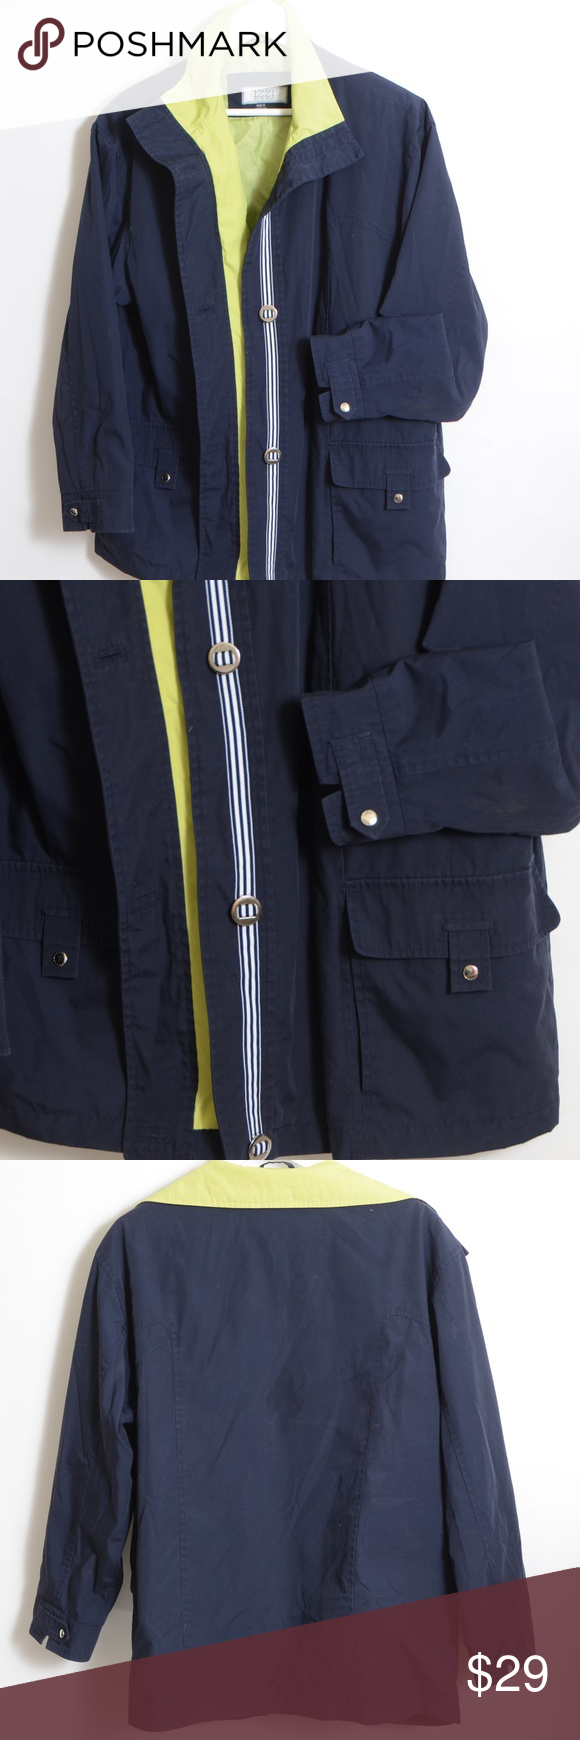 Izzi Women S Lightweight Jacket Nwt Size Xl Nwot Izzi Outerwear Navy Blue With Lime Color Lining Nwt Women Lightweight Jacket Womens Clothes Design Jackets [ 1740 x 580 Pixel ]